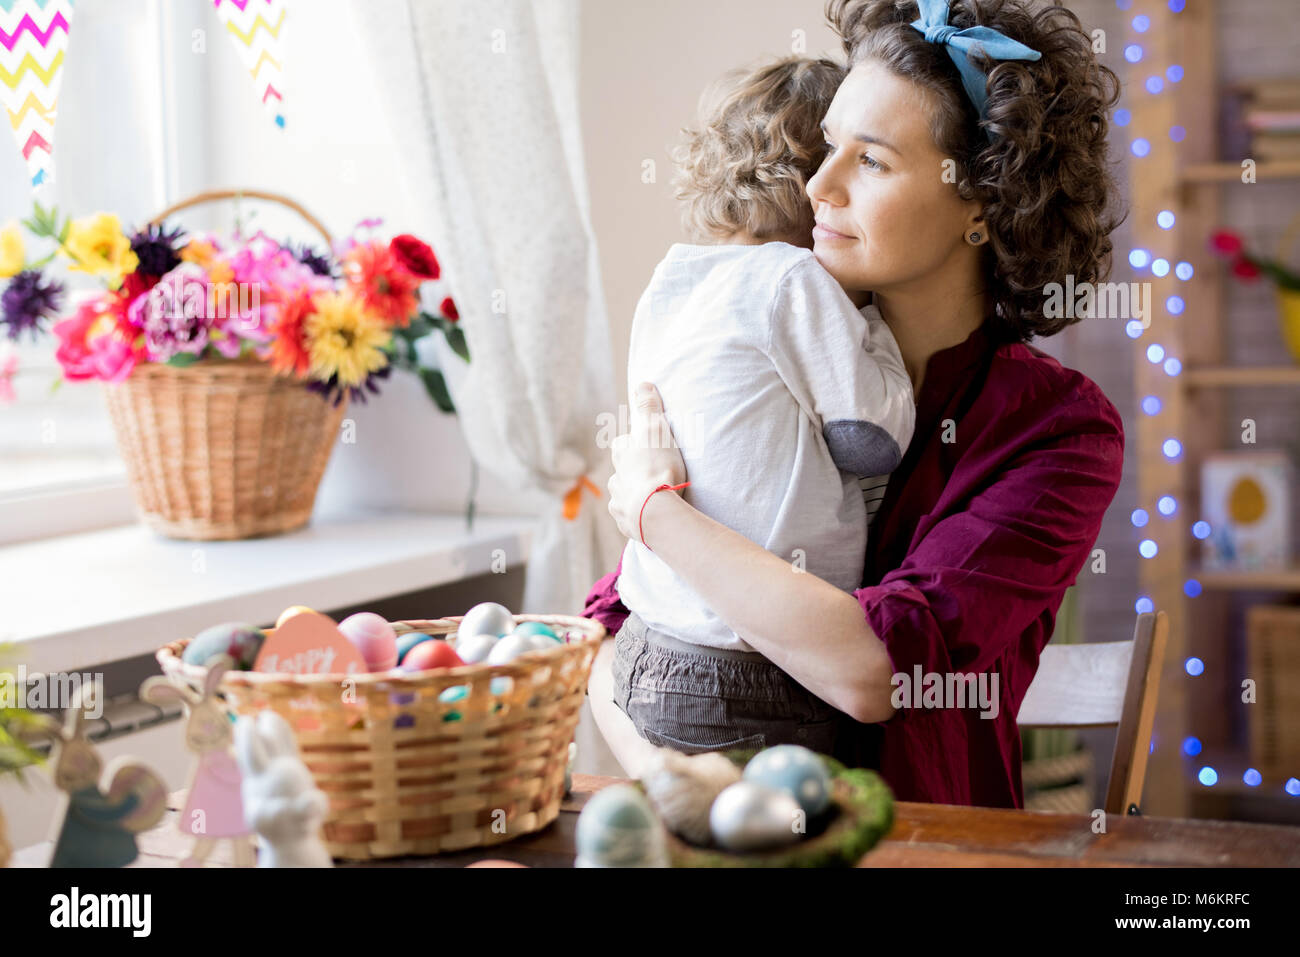 Loving Family Celebrating Easter - Stock Image